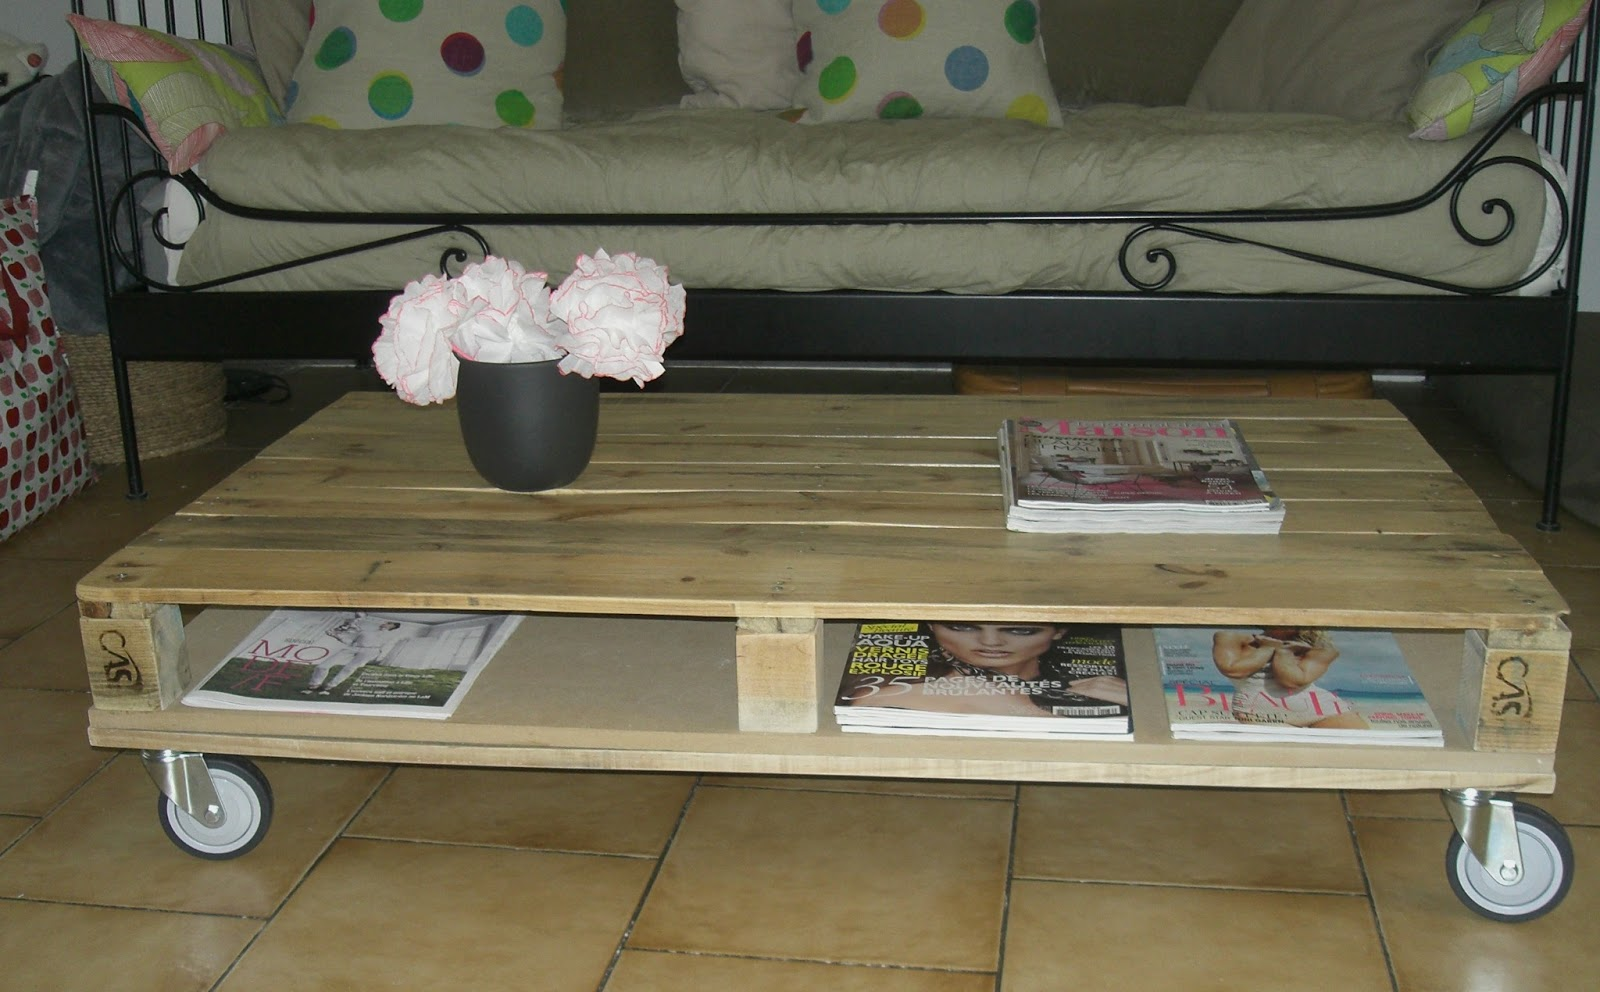 Gabulle in wonderland transformer une palette en table basse - Comment fabriquer une table basse en palette ...